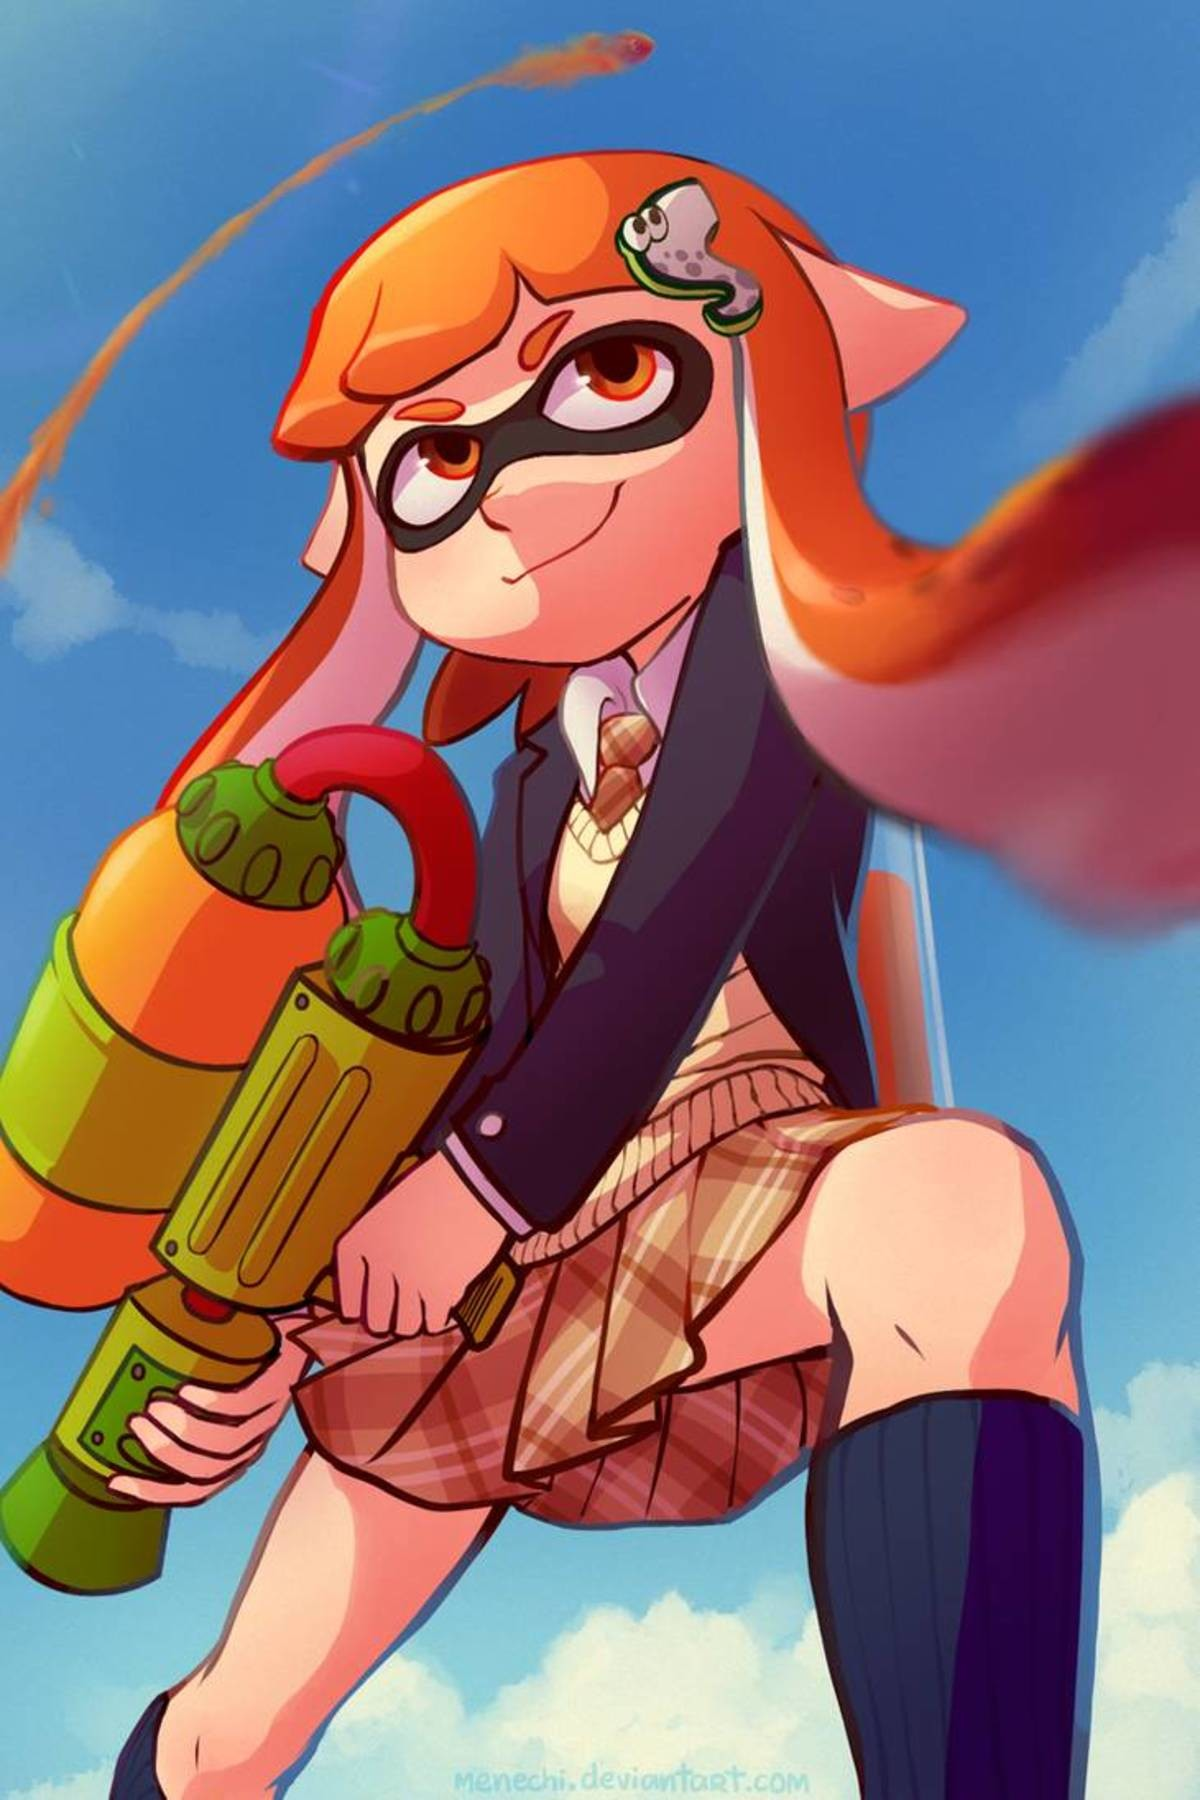 School Inkling. .. If only she had an inkling of what's in store for her after school... Then she could probably study better